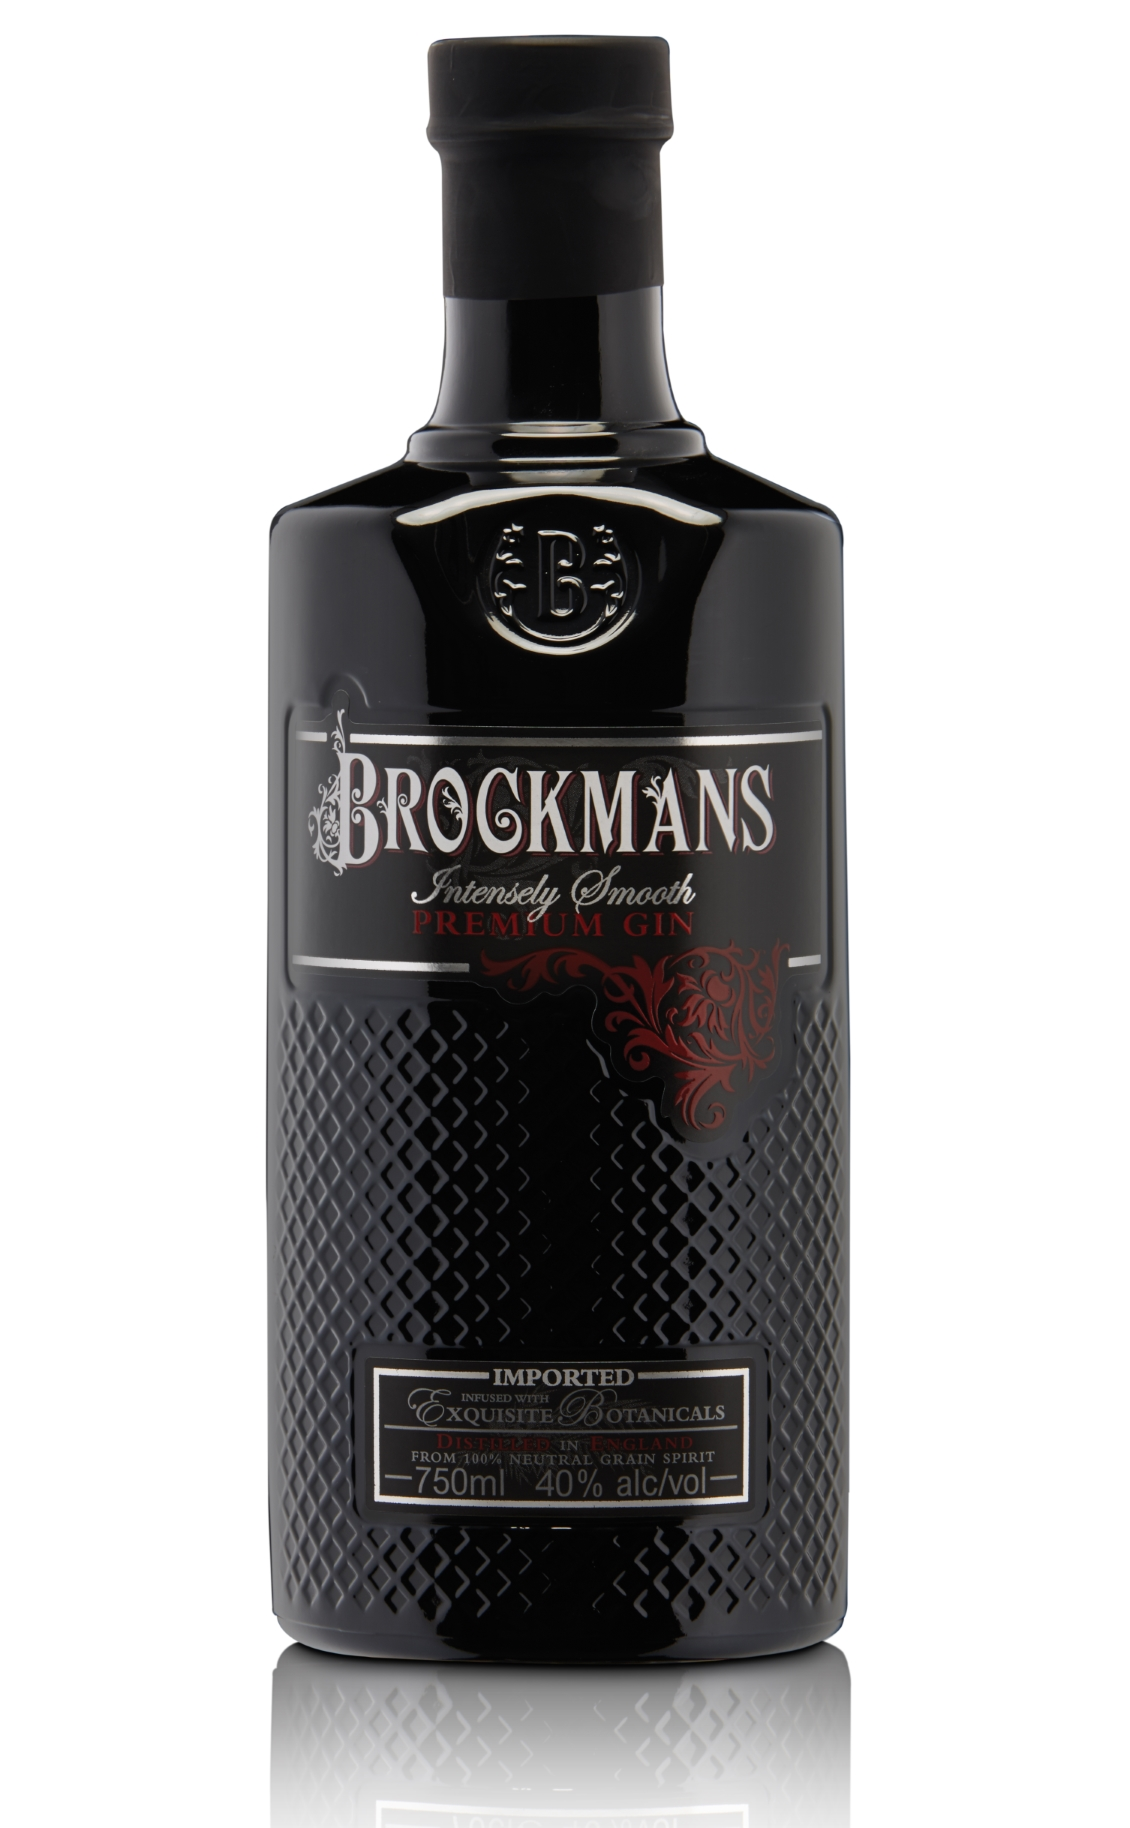 Brockmans Gin Brockmans Expands Throughout the Northeast